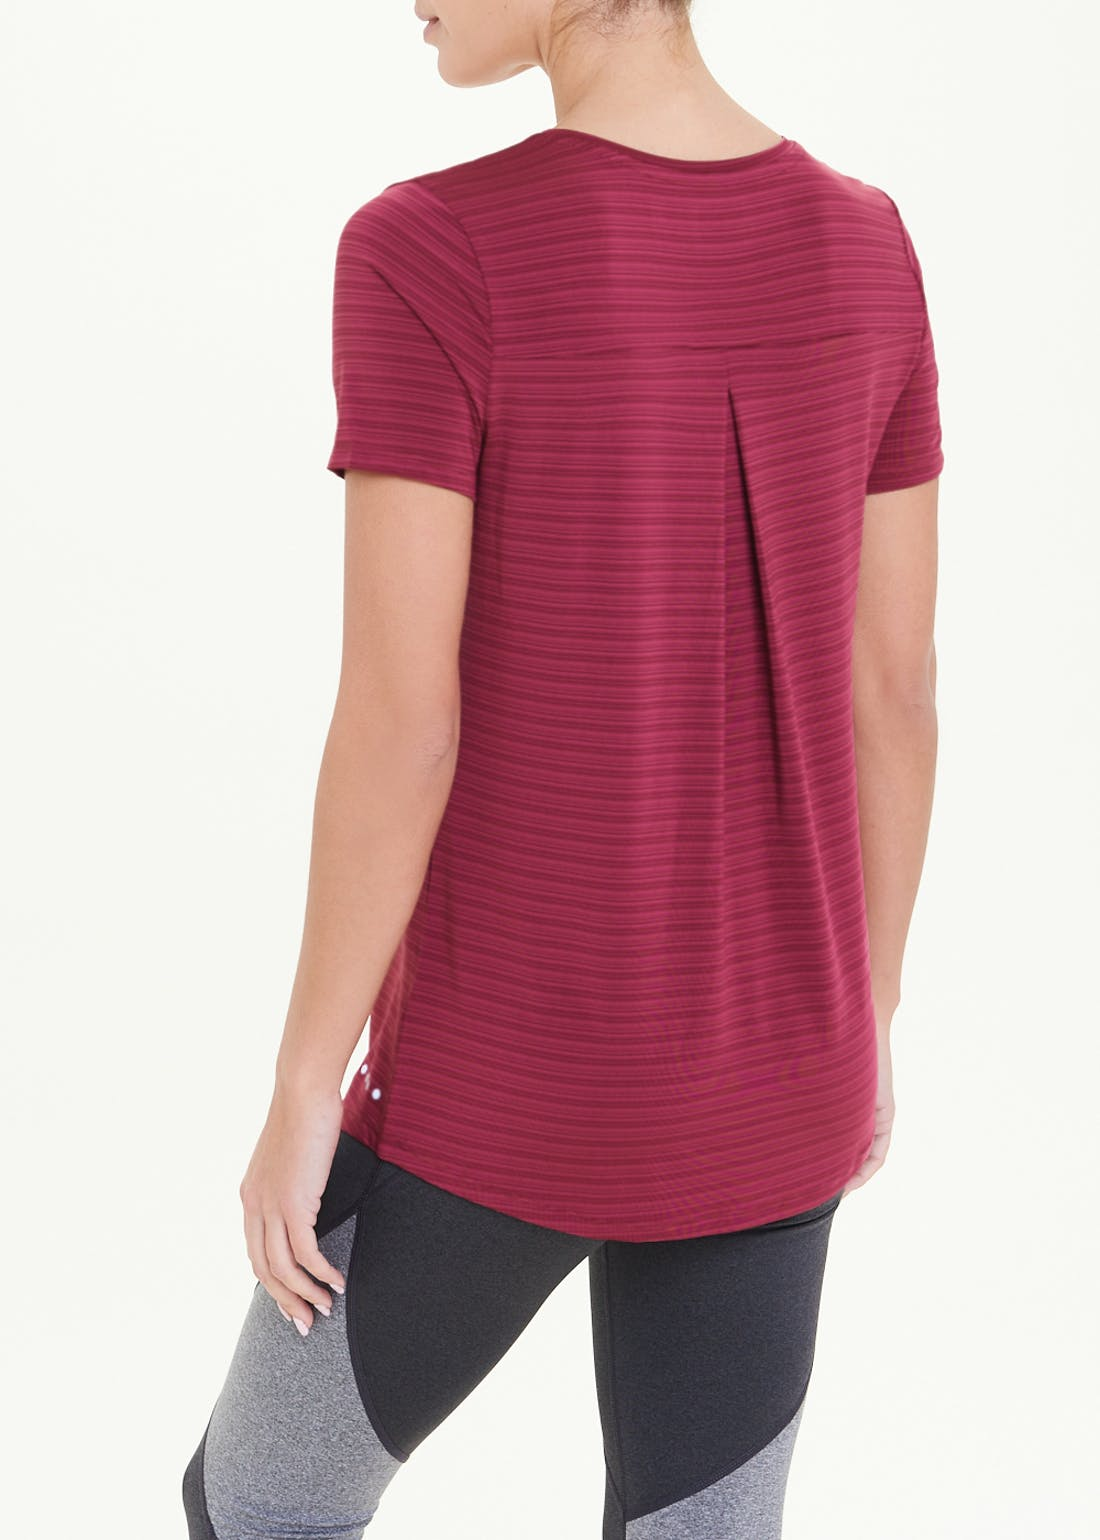 Souluxe Pink Pleat Back Gym T-Shirt